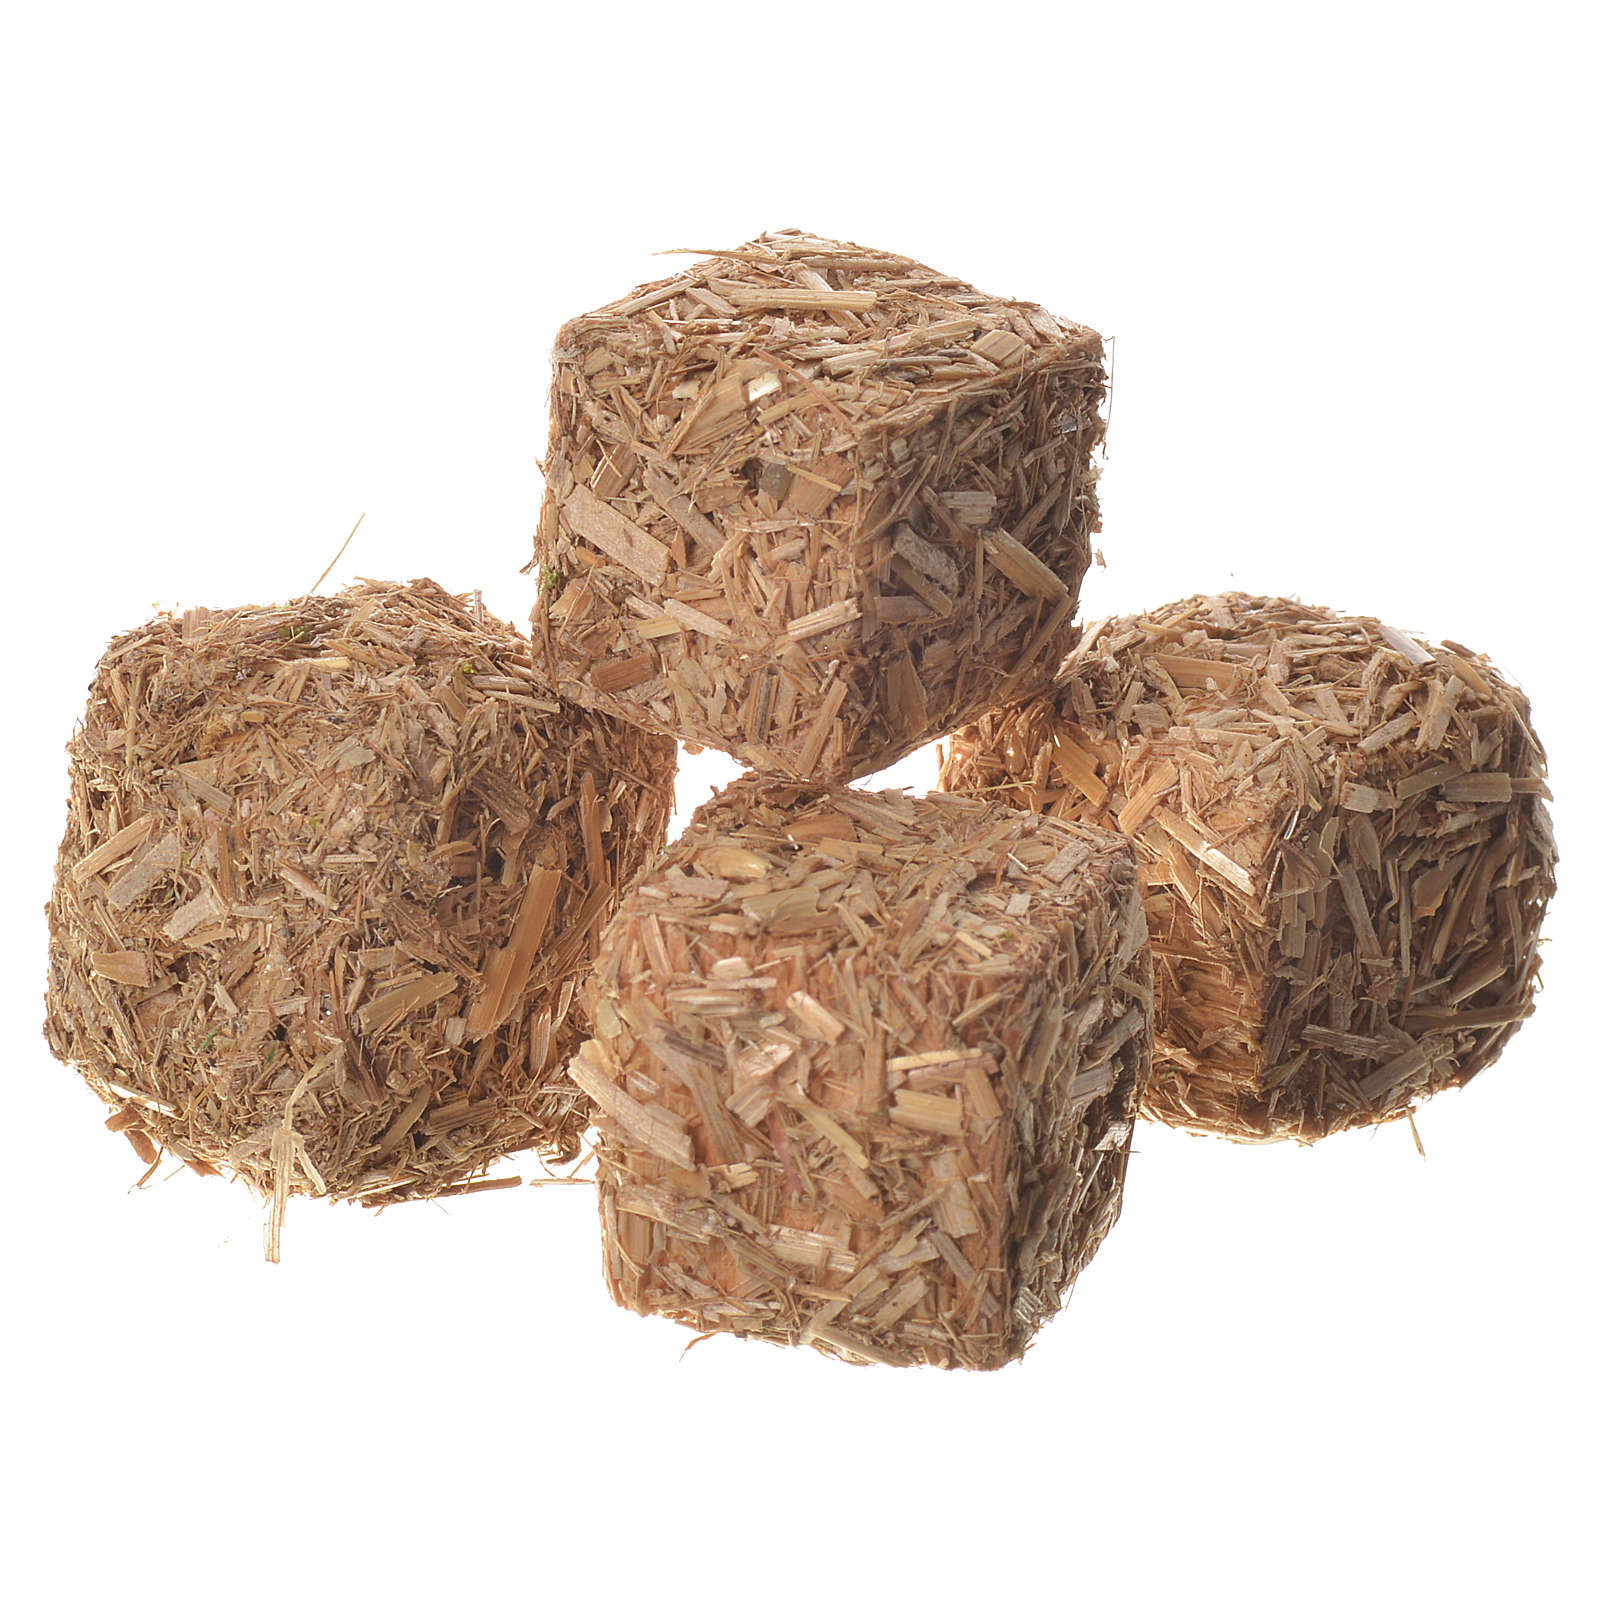 Hay bales for nativities, set of 4 2x2x2.5cm 4